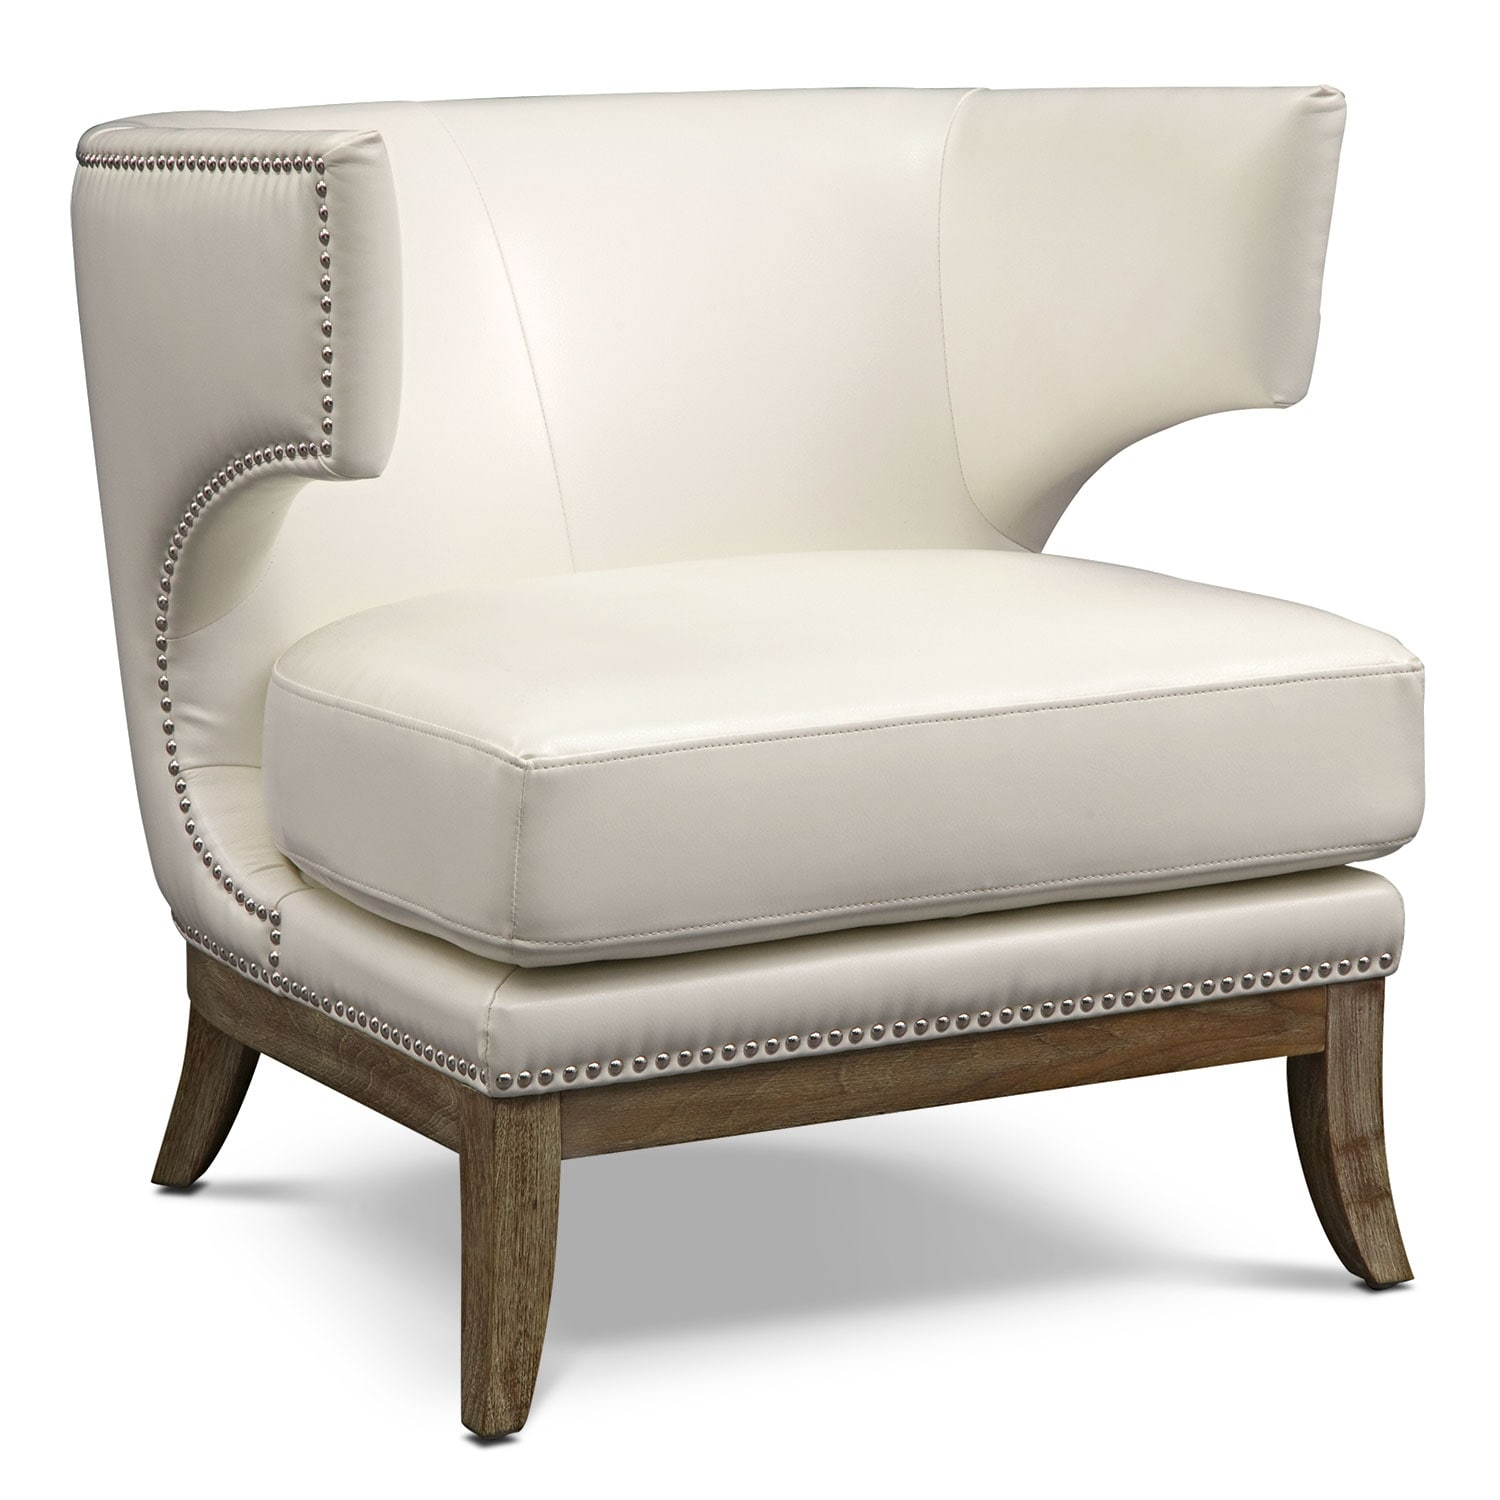 Clarise Accent Chair - Ivory